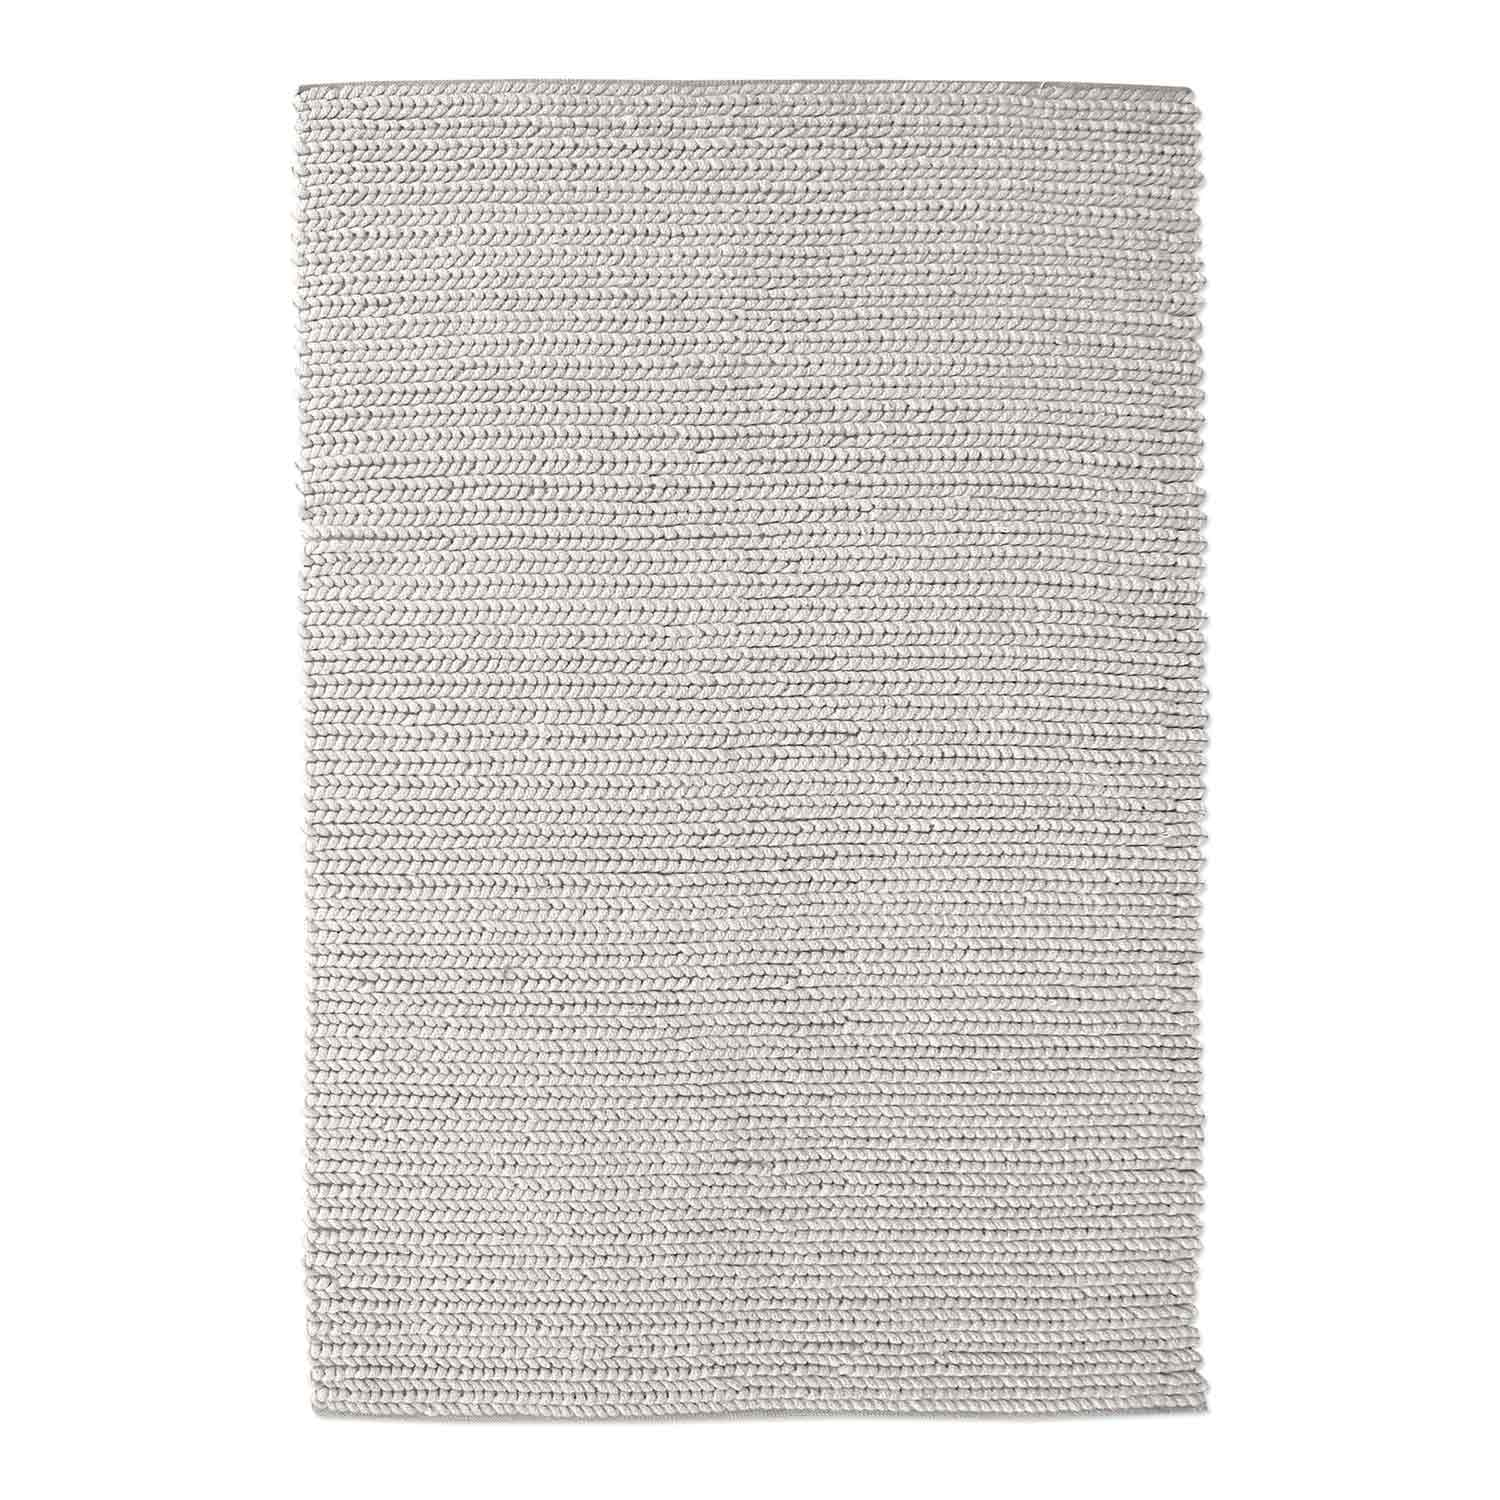 Uttermost Europa 9 x 12 Rug - Ivory